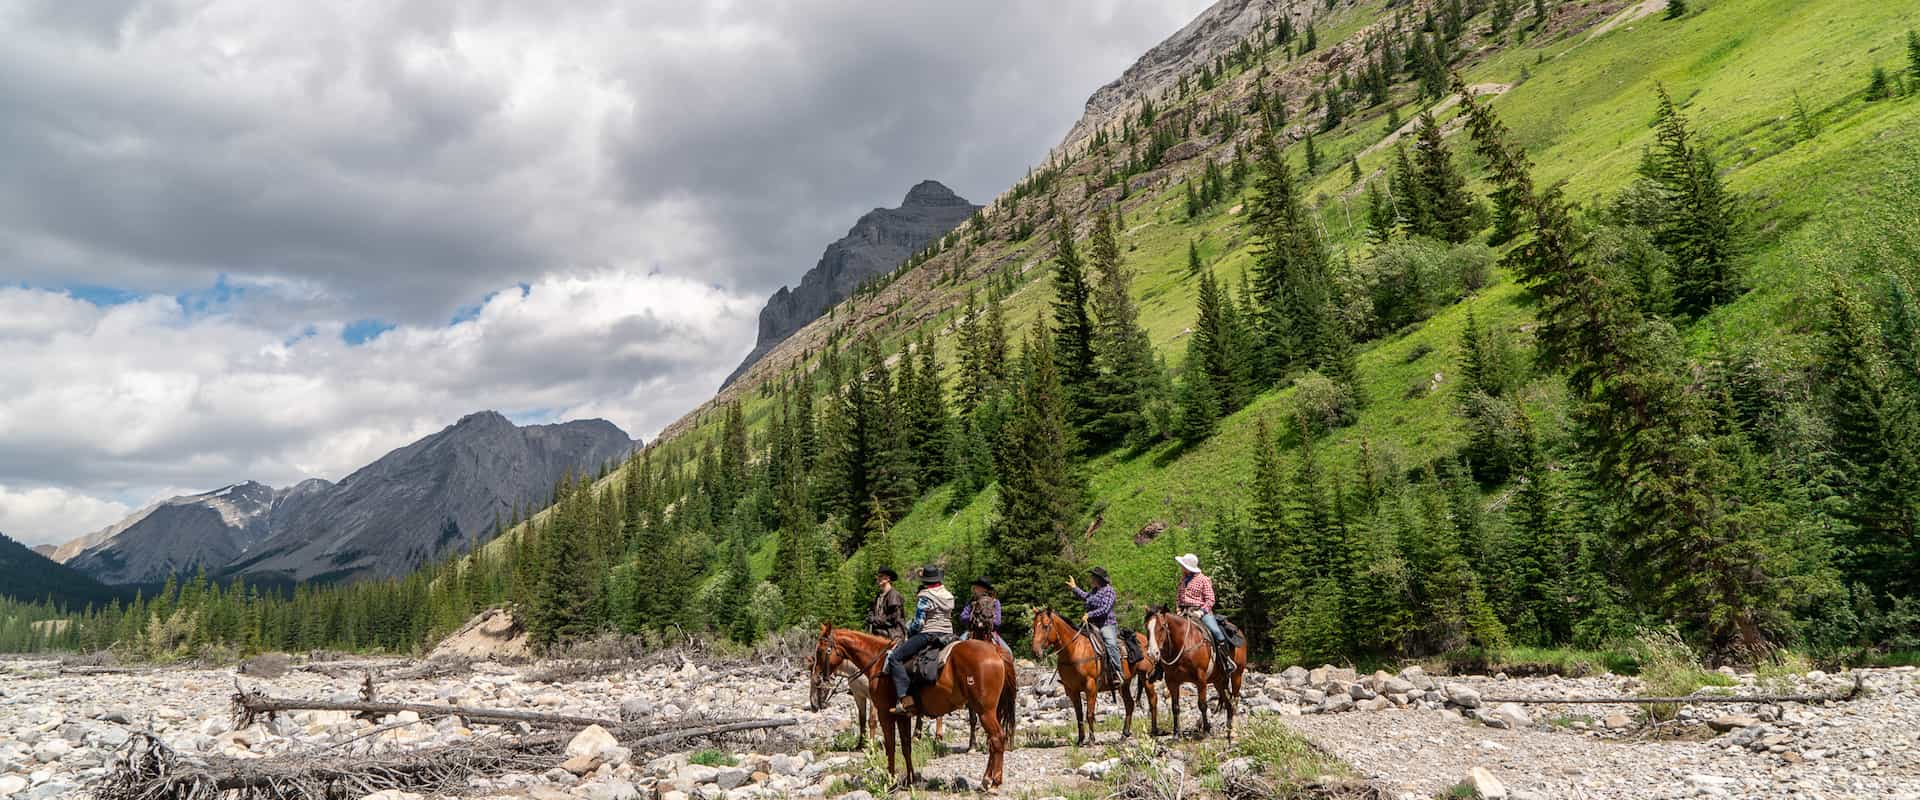 Day Ride from Stoney Camp on the Stoney Creek Tent Trip with Banff Trail Riders in the Canadian Rockies